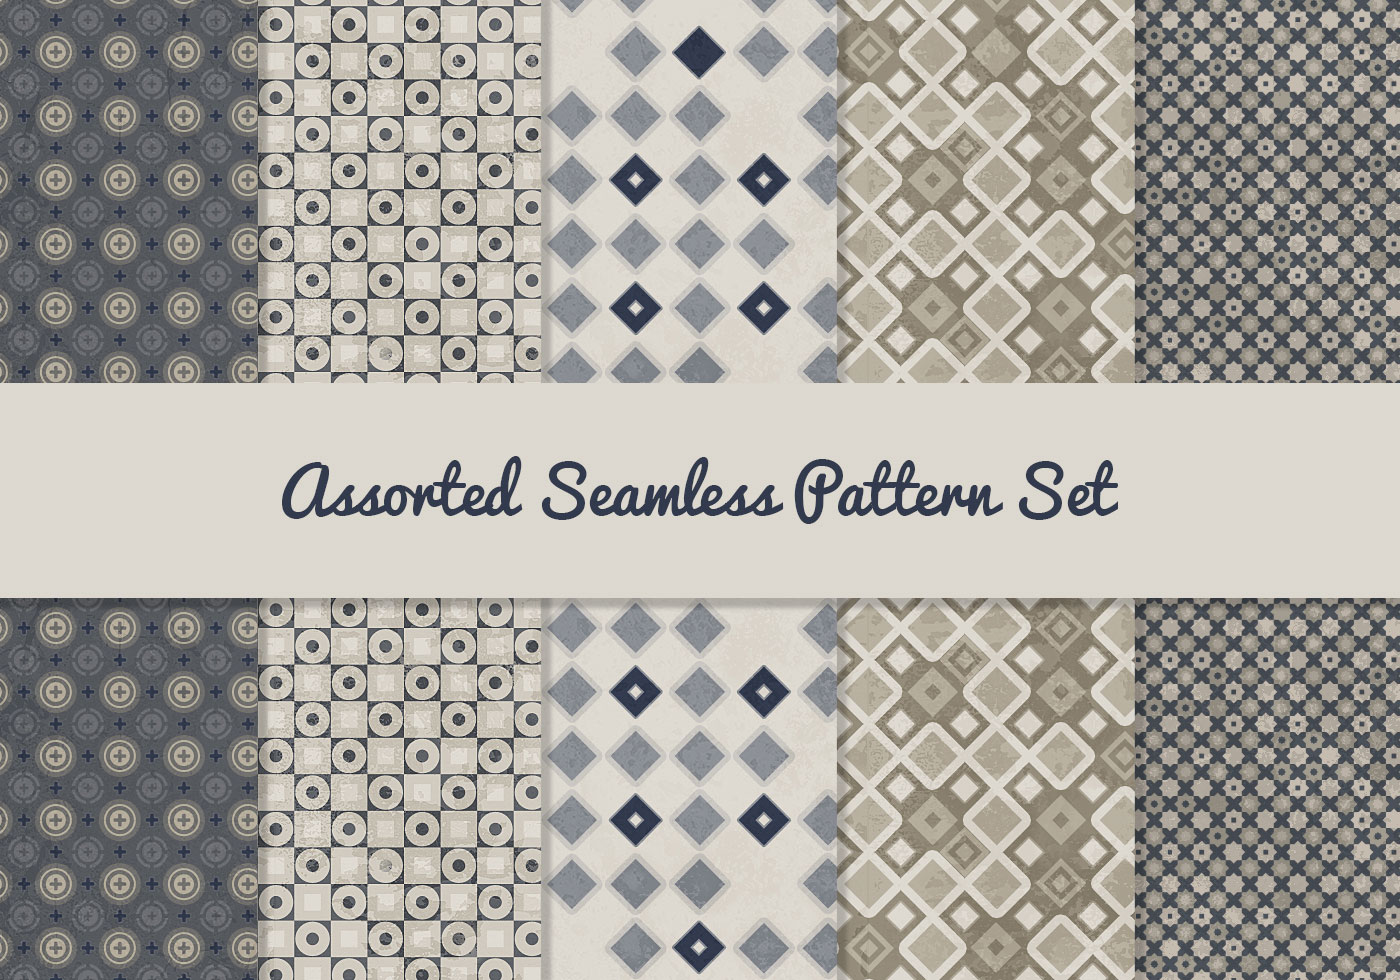 21704 Getmyui Com Seamless Patterns on Addition Patterns